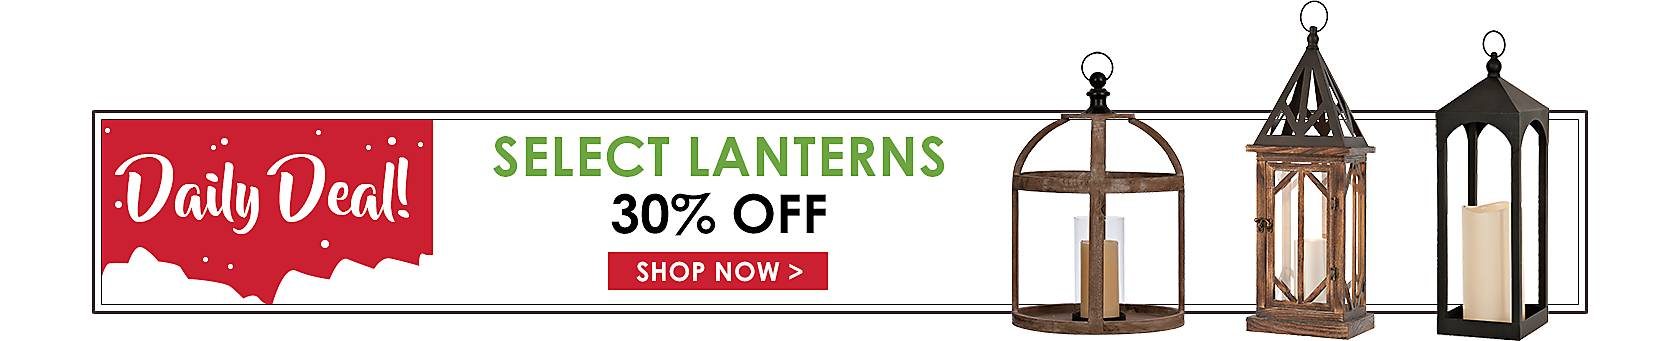 Daily Deal - 30% Off All Lanterns - Shop Now